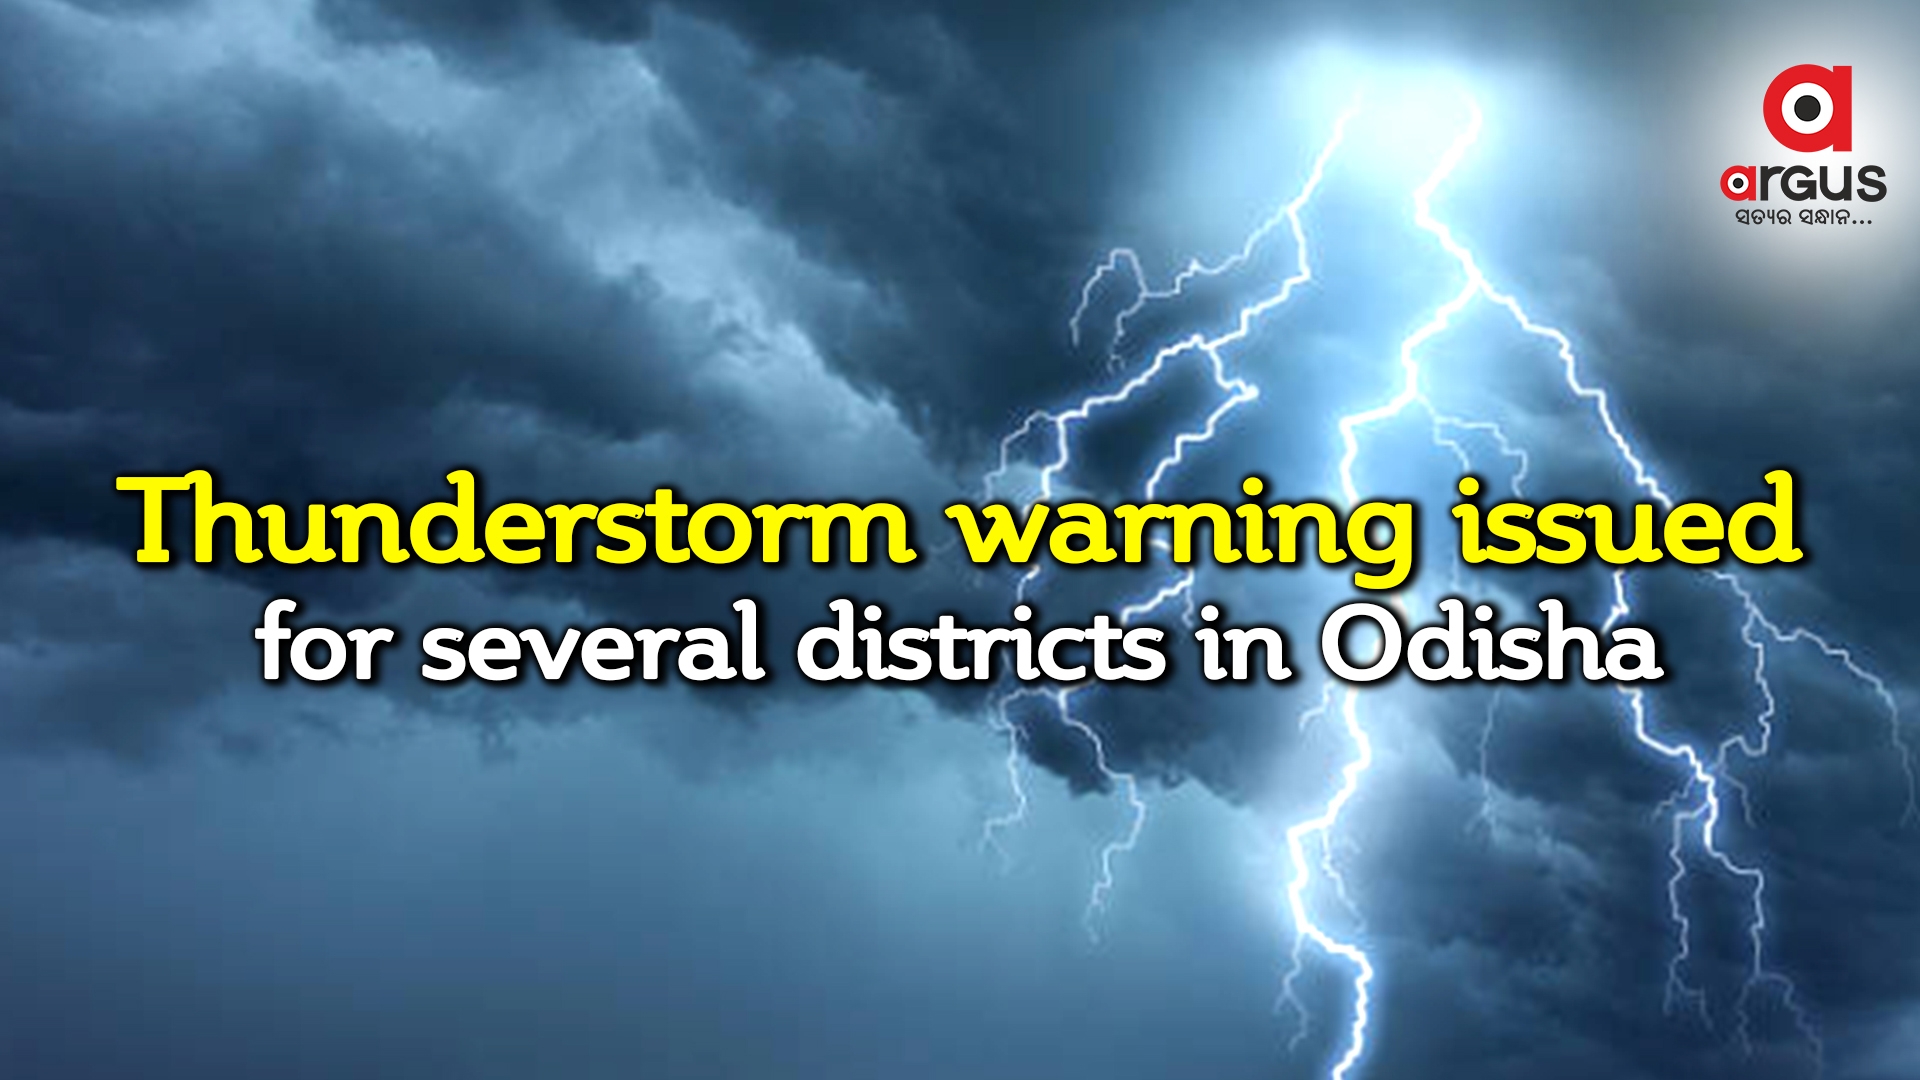 Thunderstorm, lightning warning issued for 5 districts of Odisha